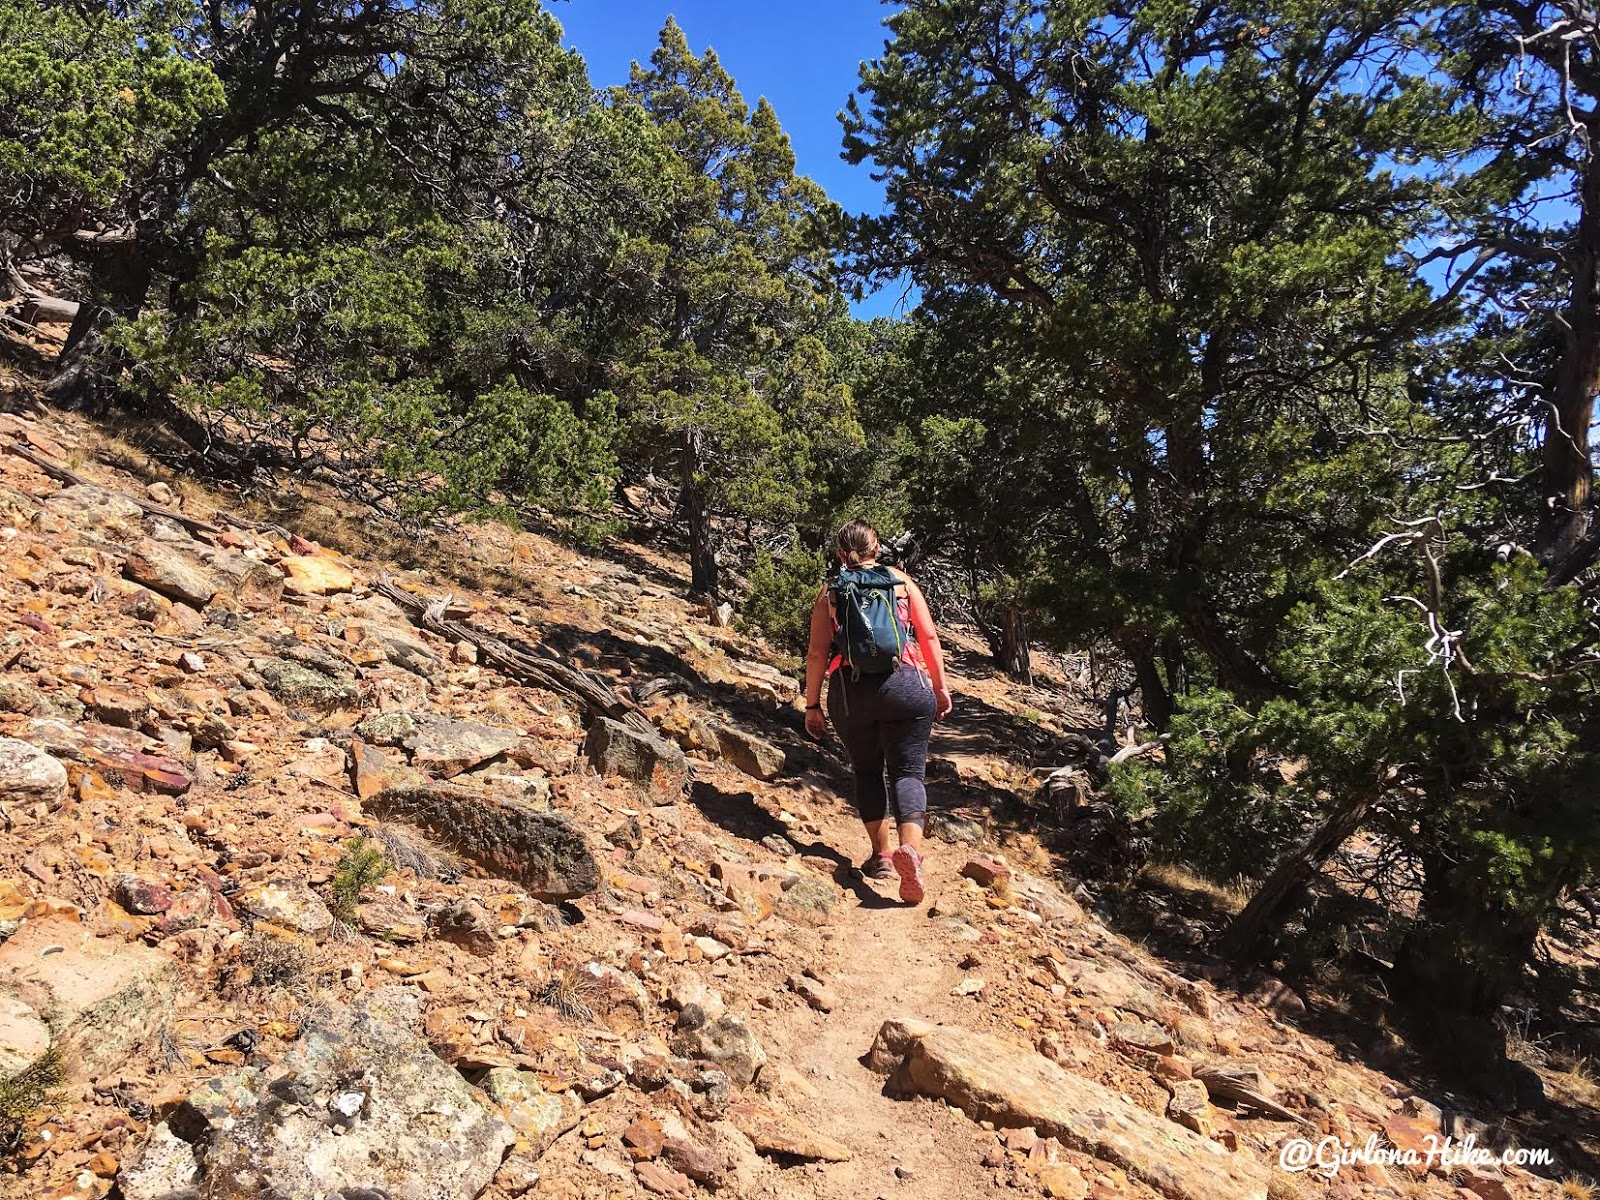 Hiking the North Vista Trail, Black Canyon of the Gunnison National Park